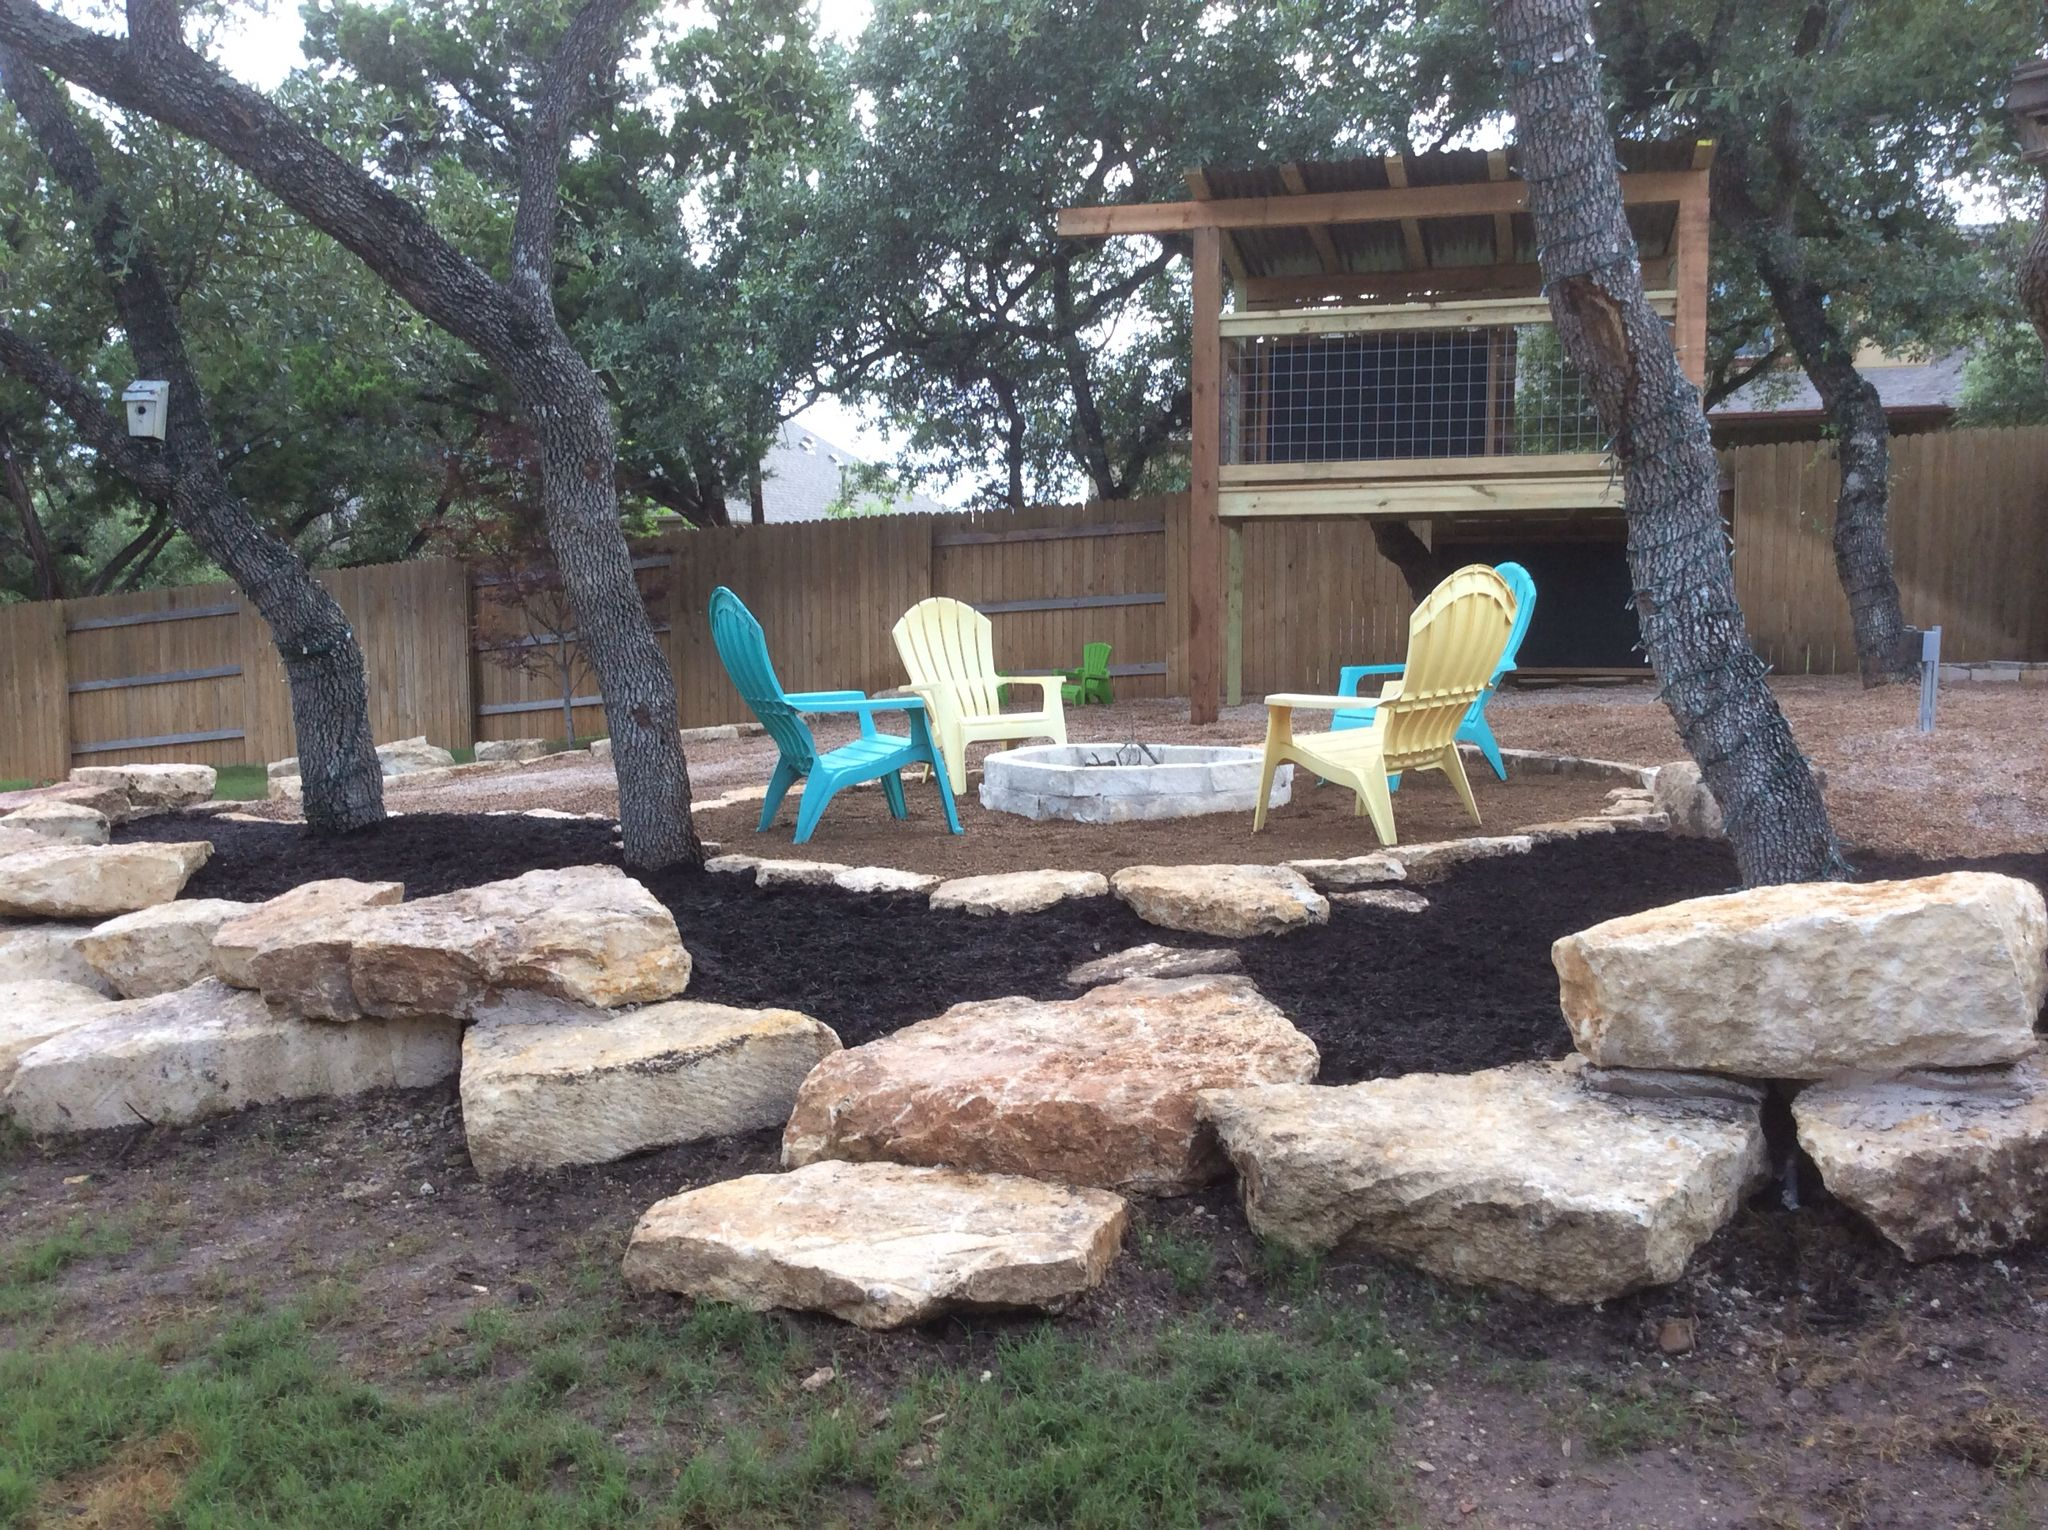 Limestone Fire Pit With Crushed Granite Seating Area Landscape Projects By Greengoes Landscapes Llc Outdoor Decor Crushed Granite Decor